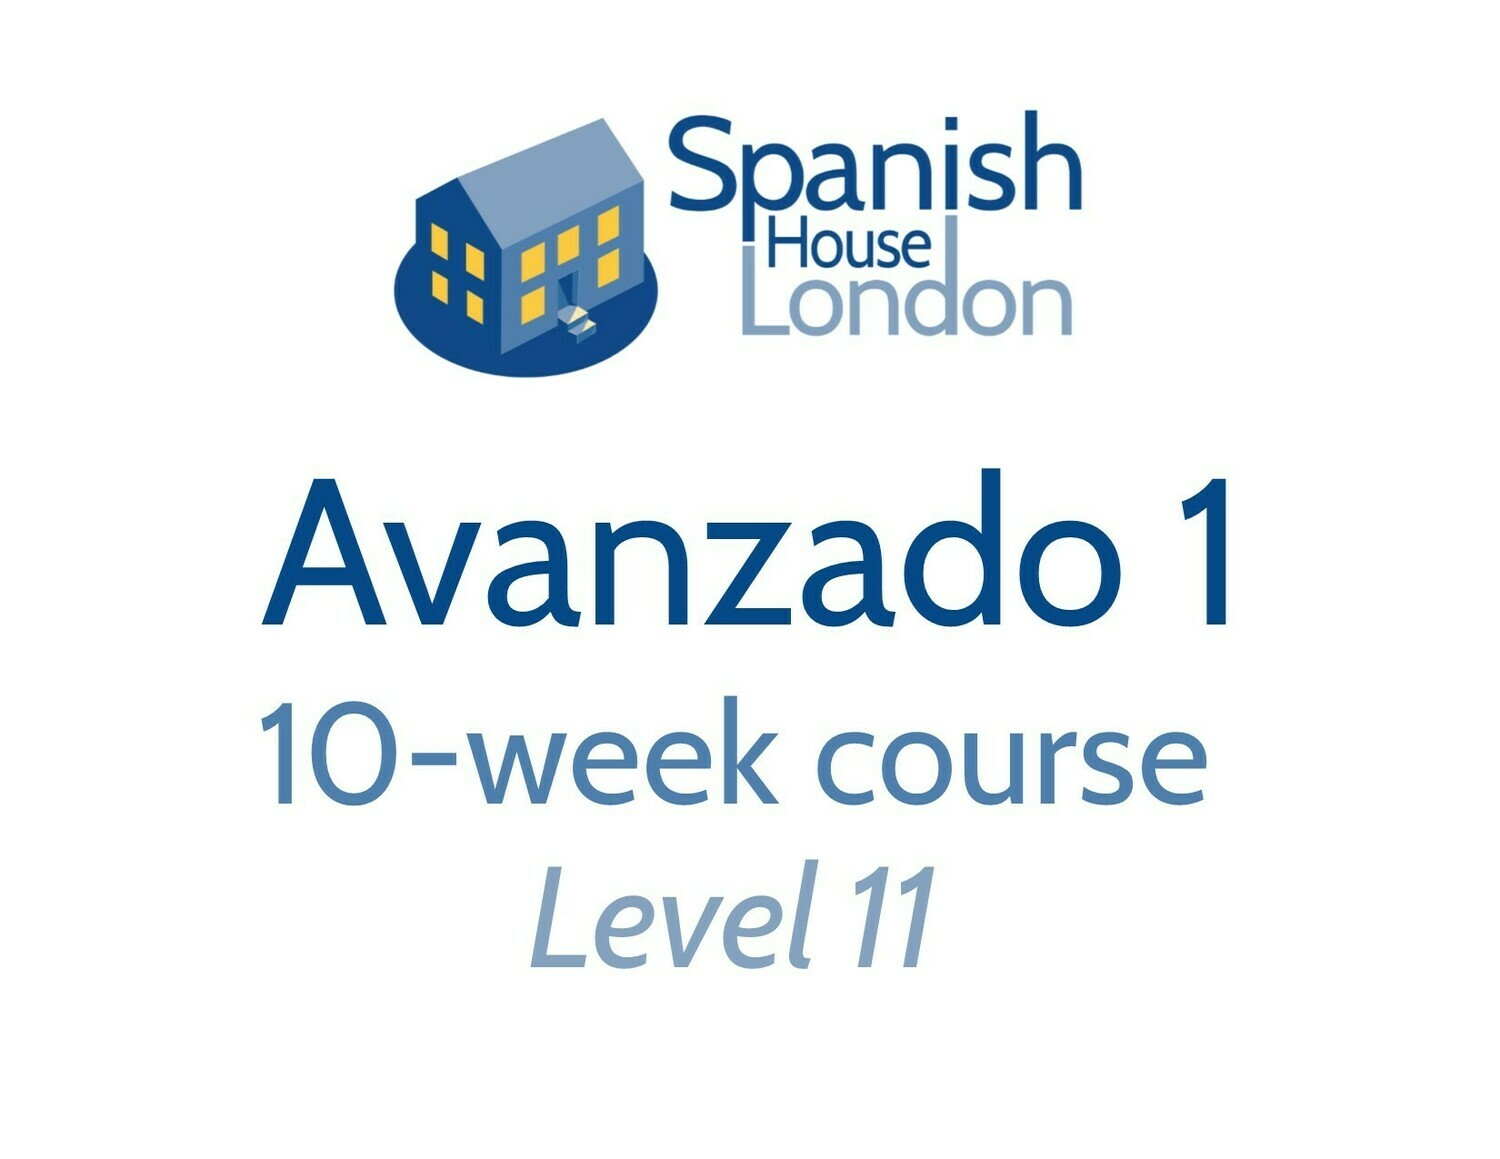 Avanzado 1 Course starting on 17th November at 7.30pm in Clapham North